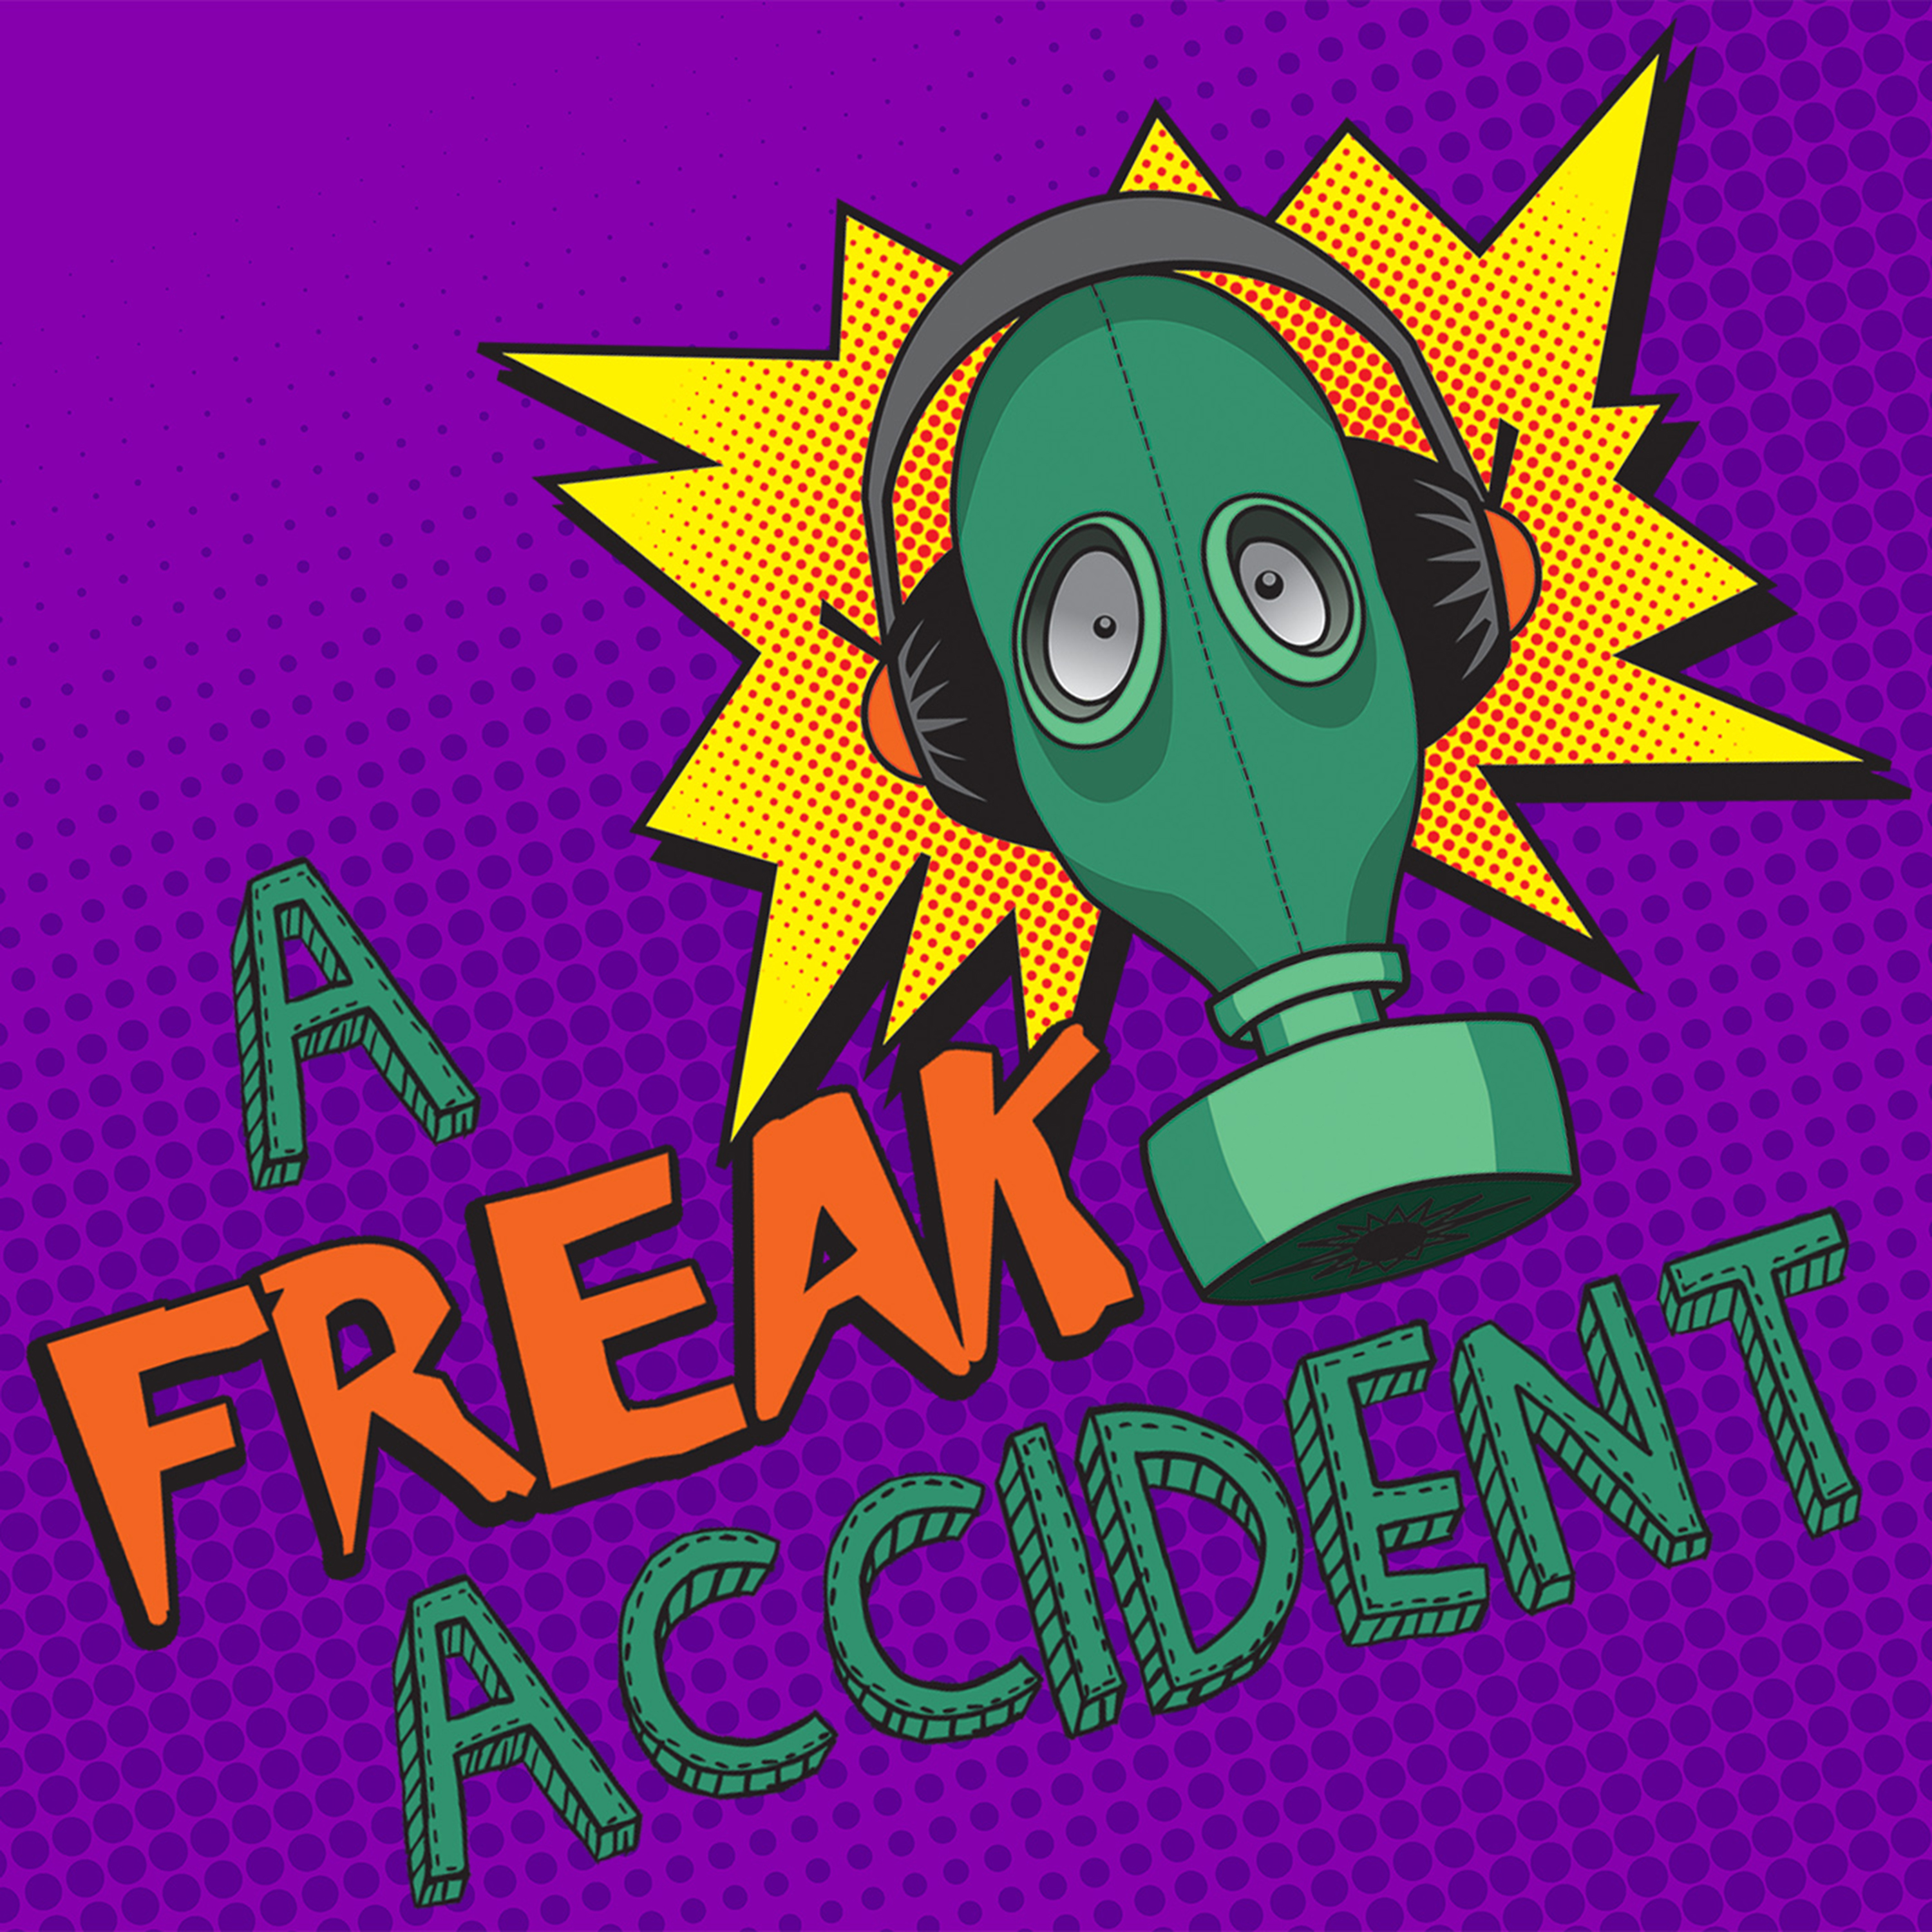 A Freak Accident